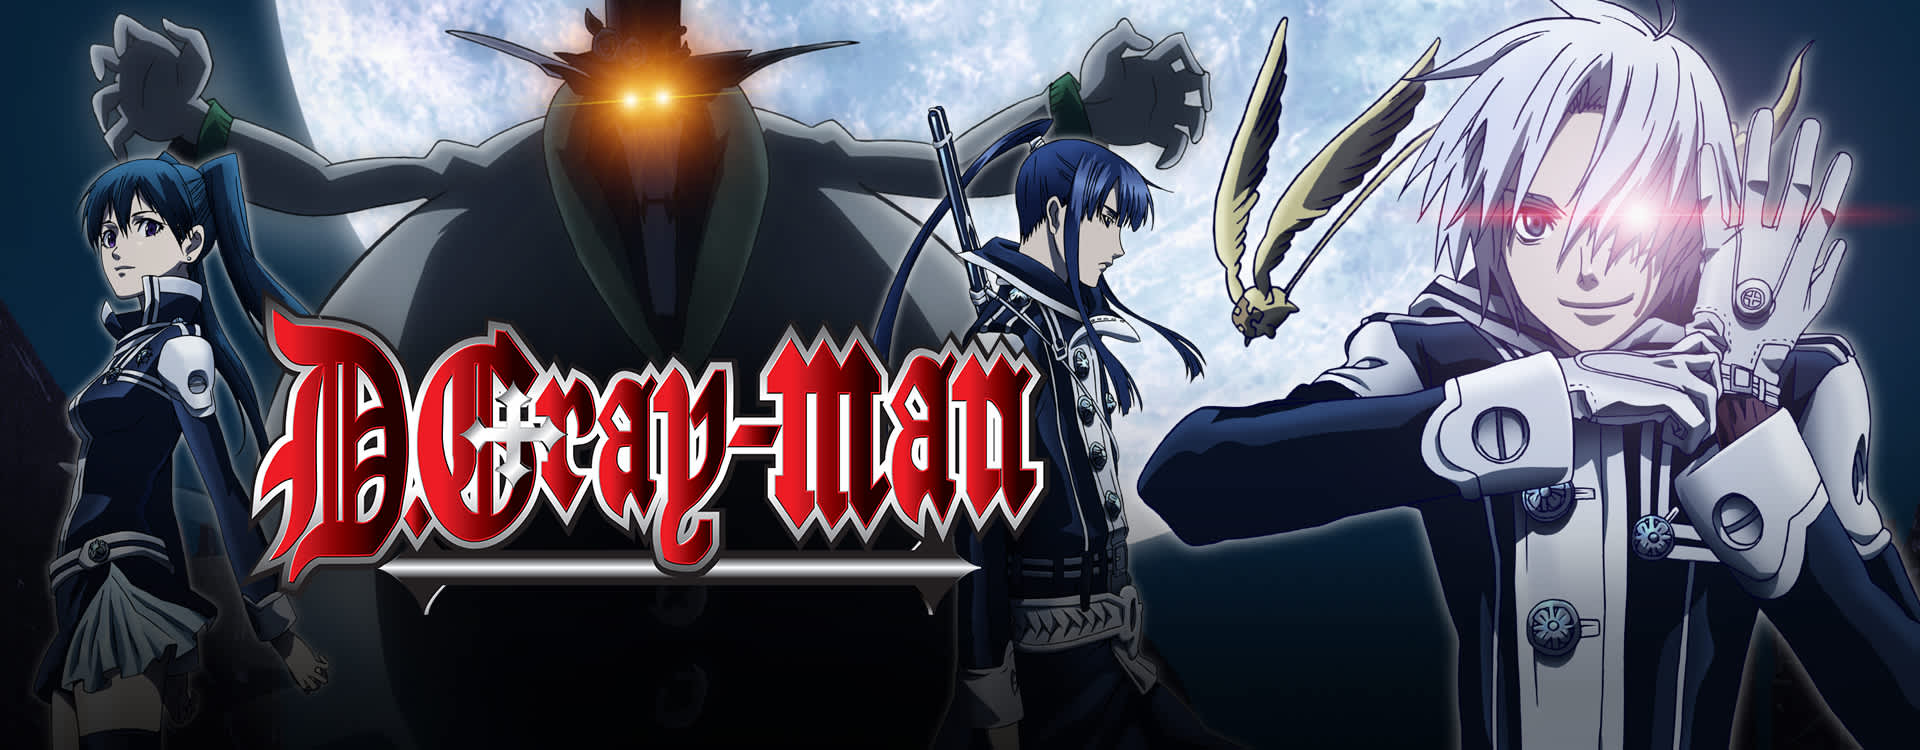 Stream Amp Watch DGray Man Episodes Online Sub Amp Dub